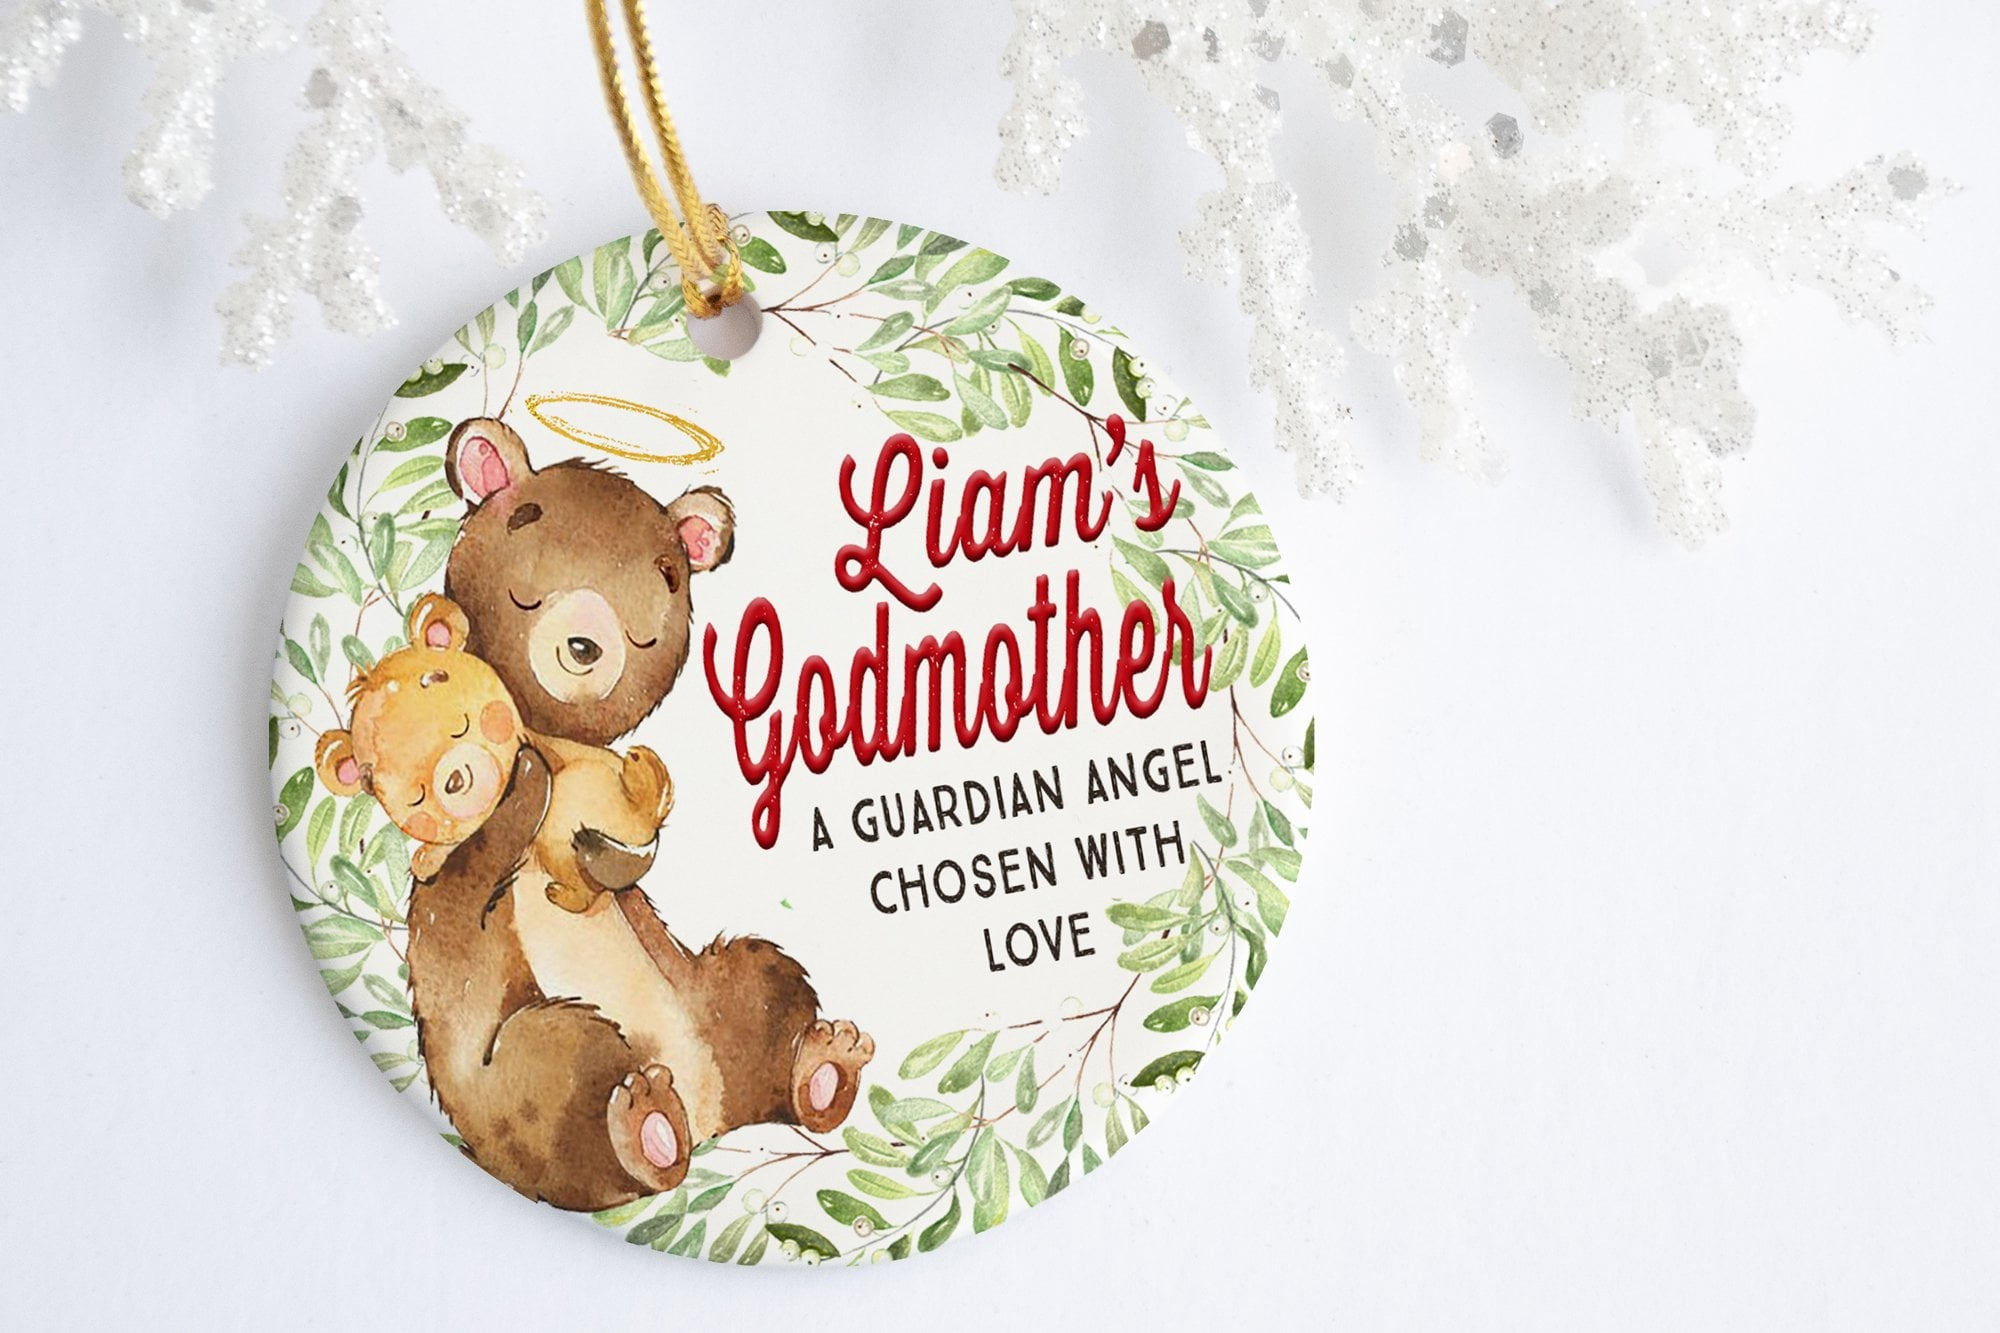 Will You Be My Godmother Gift | Godmother Guardian Angel Ornament | Ollie + Hank